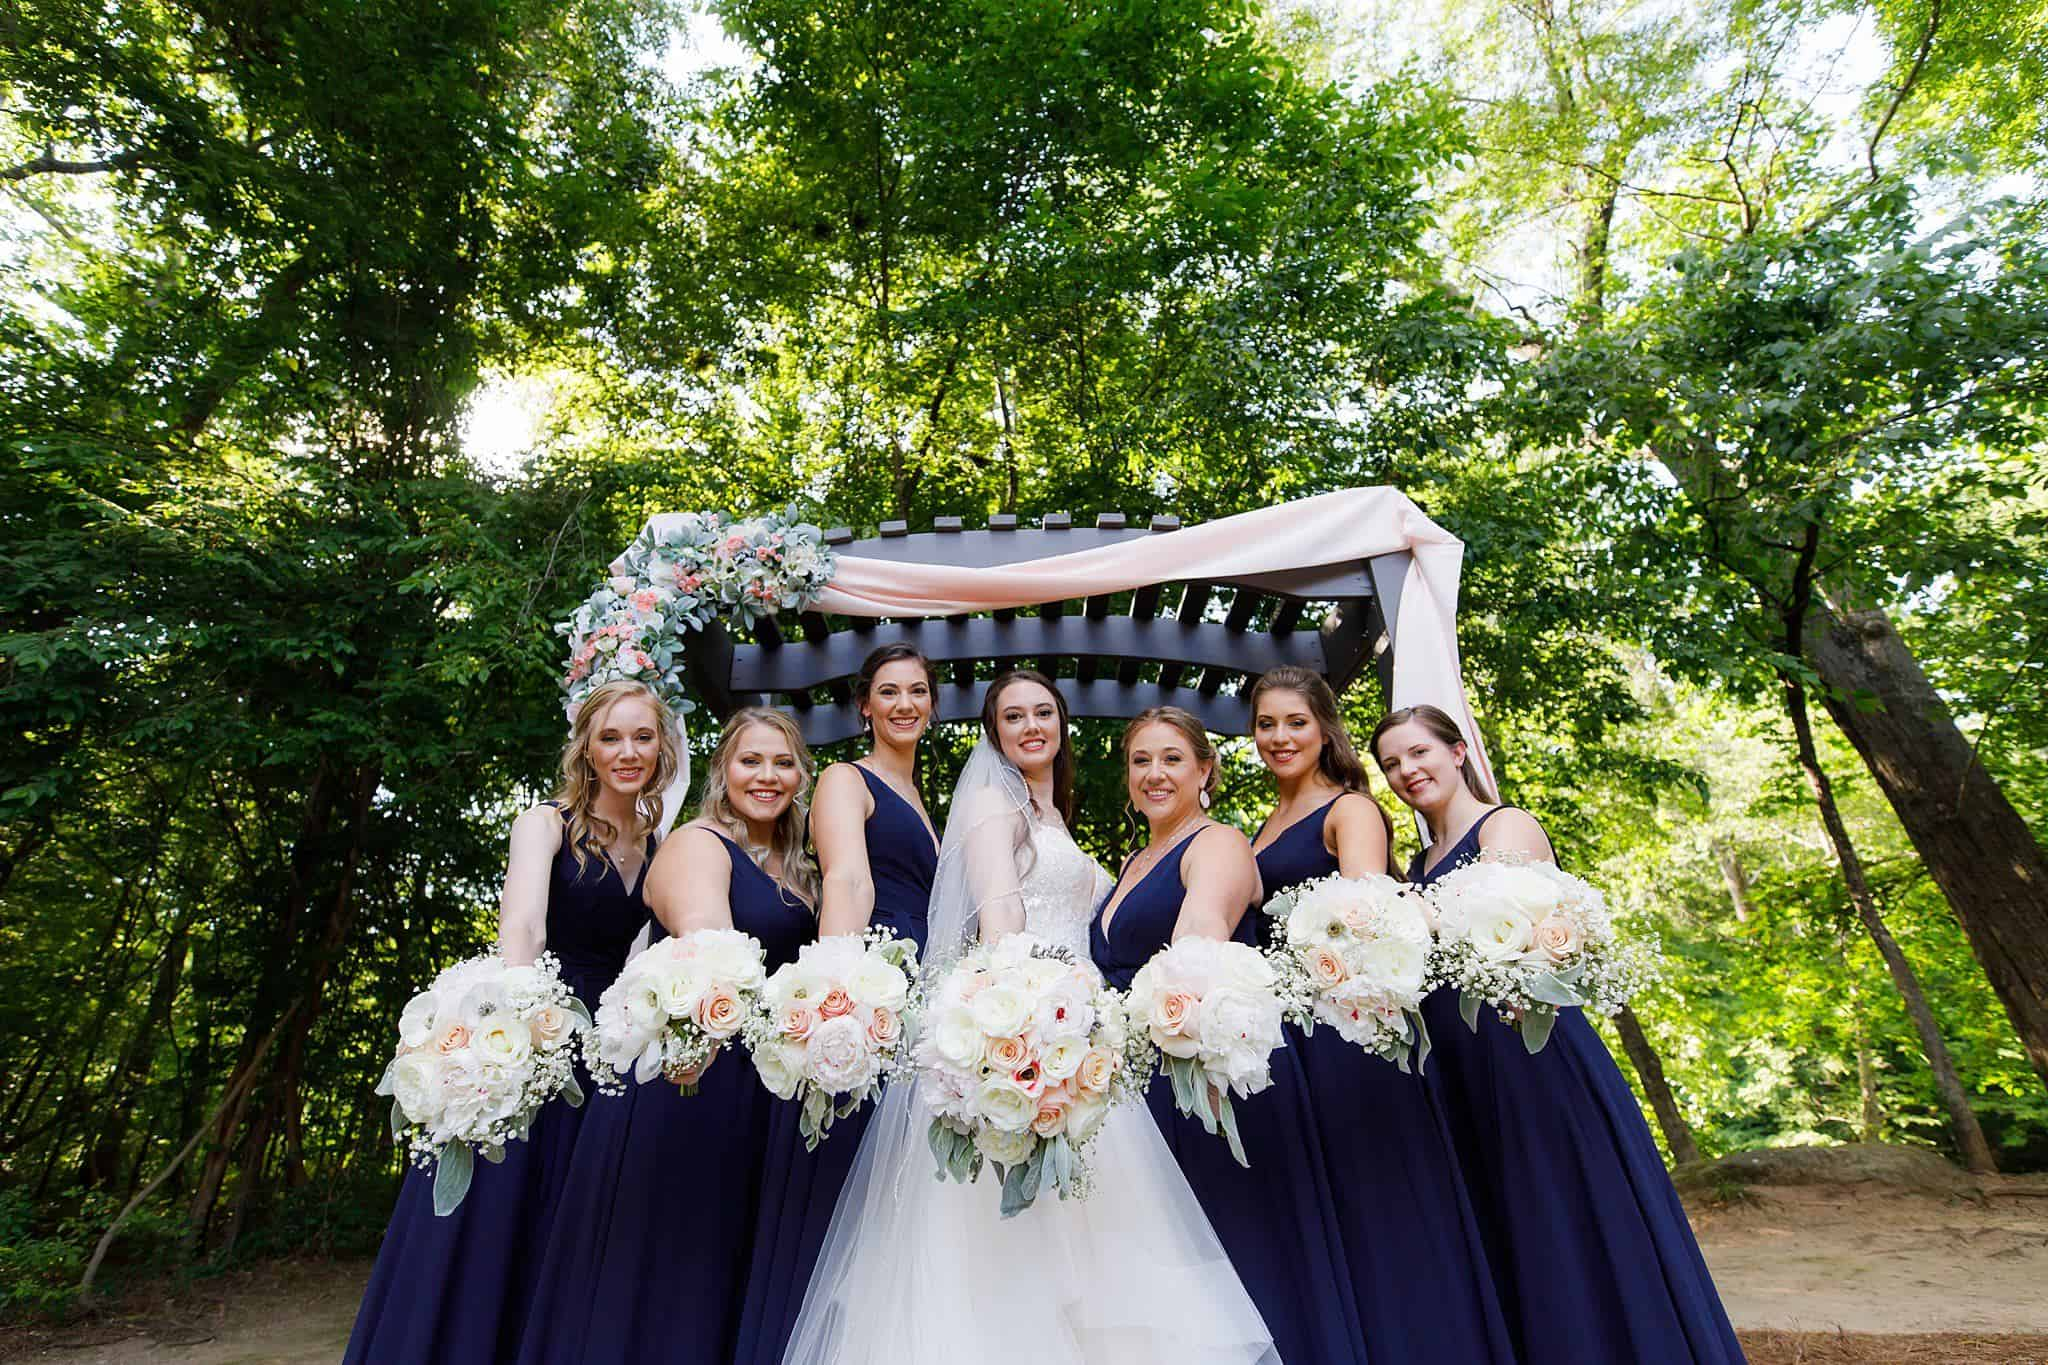 Bride and bridesmaids show off bouquets